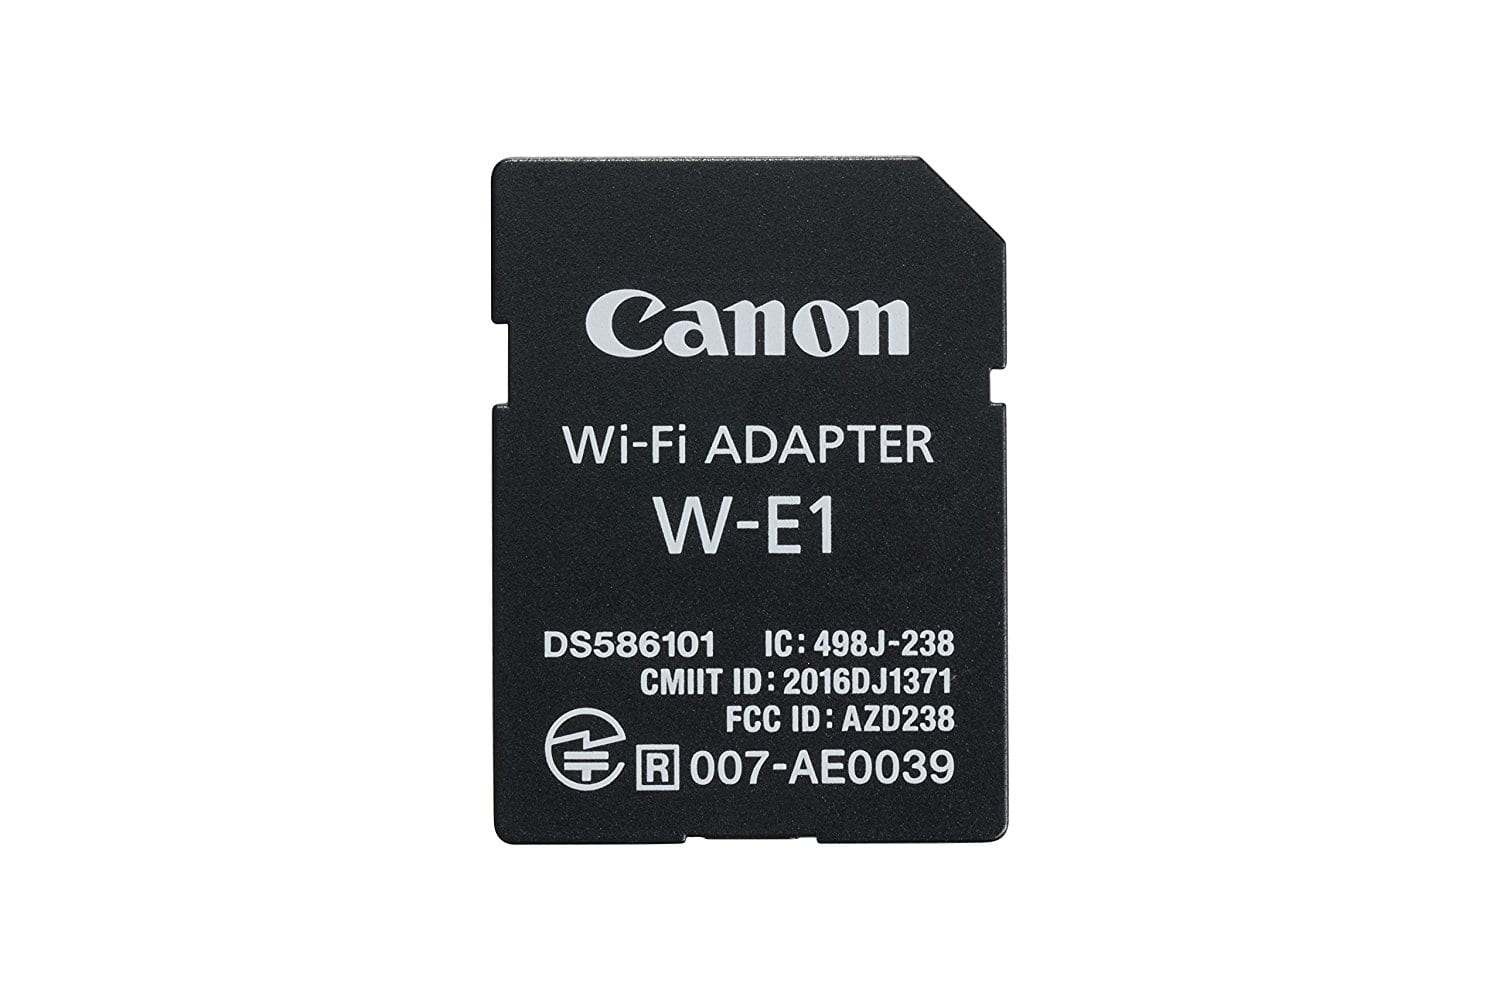 Canon WiFi Adapter for 7D Mark II, 5DS, 5DS R DSLR Cameras (W-E1) $28.99 + Free Shipping